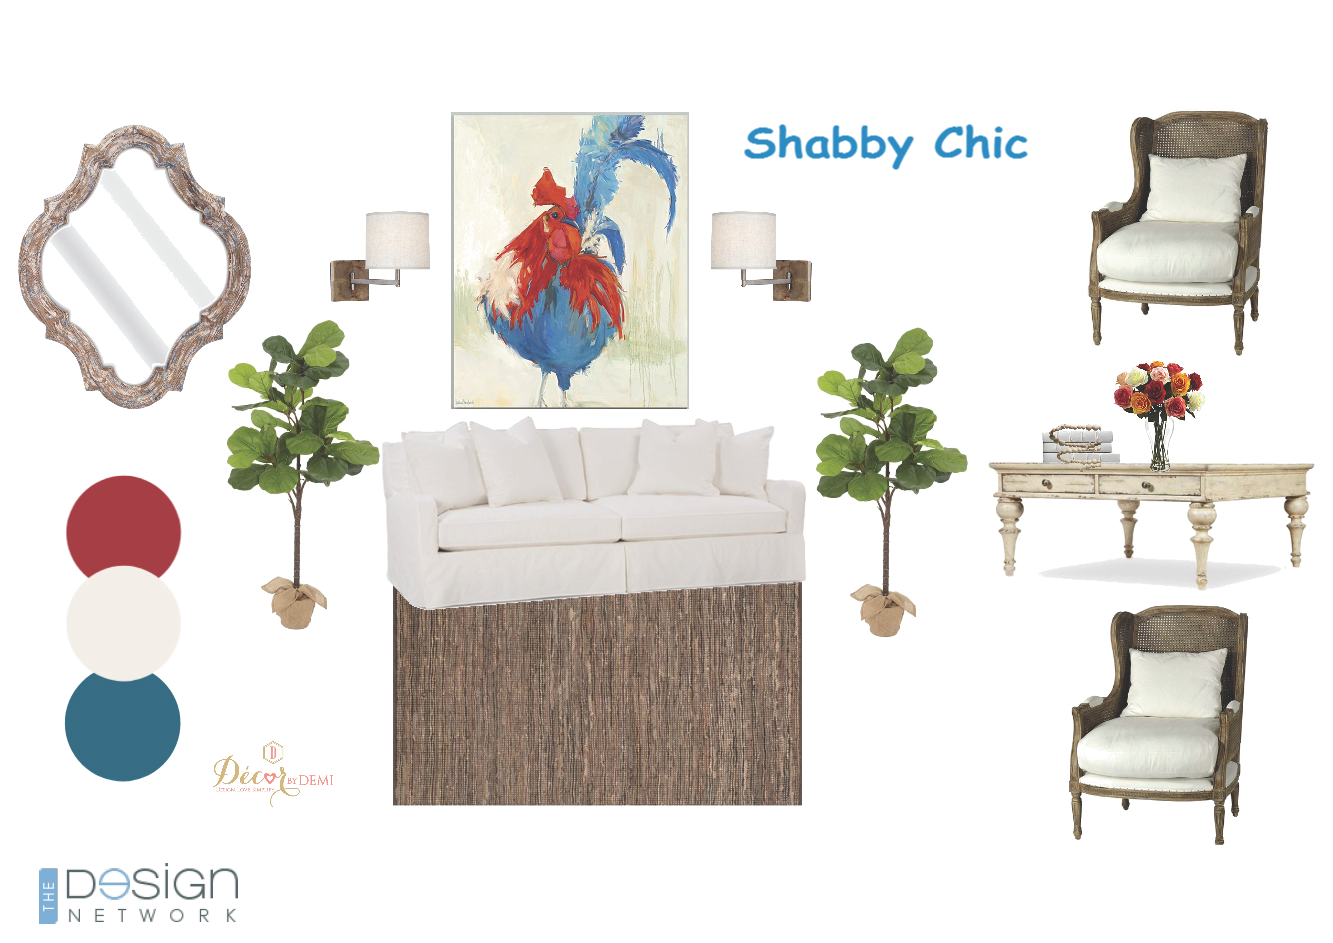 decor_by_demi_shabby_chic_interior_design.png